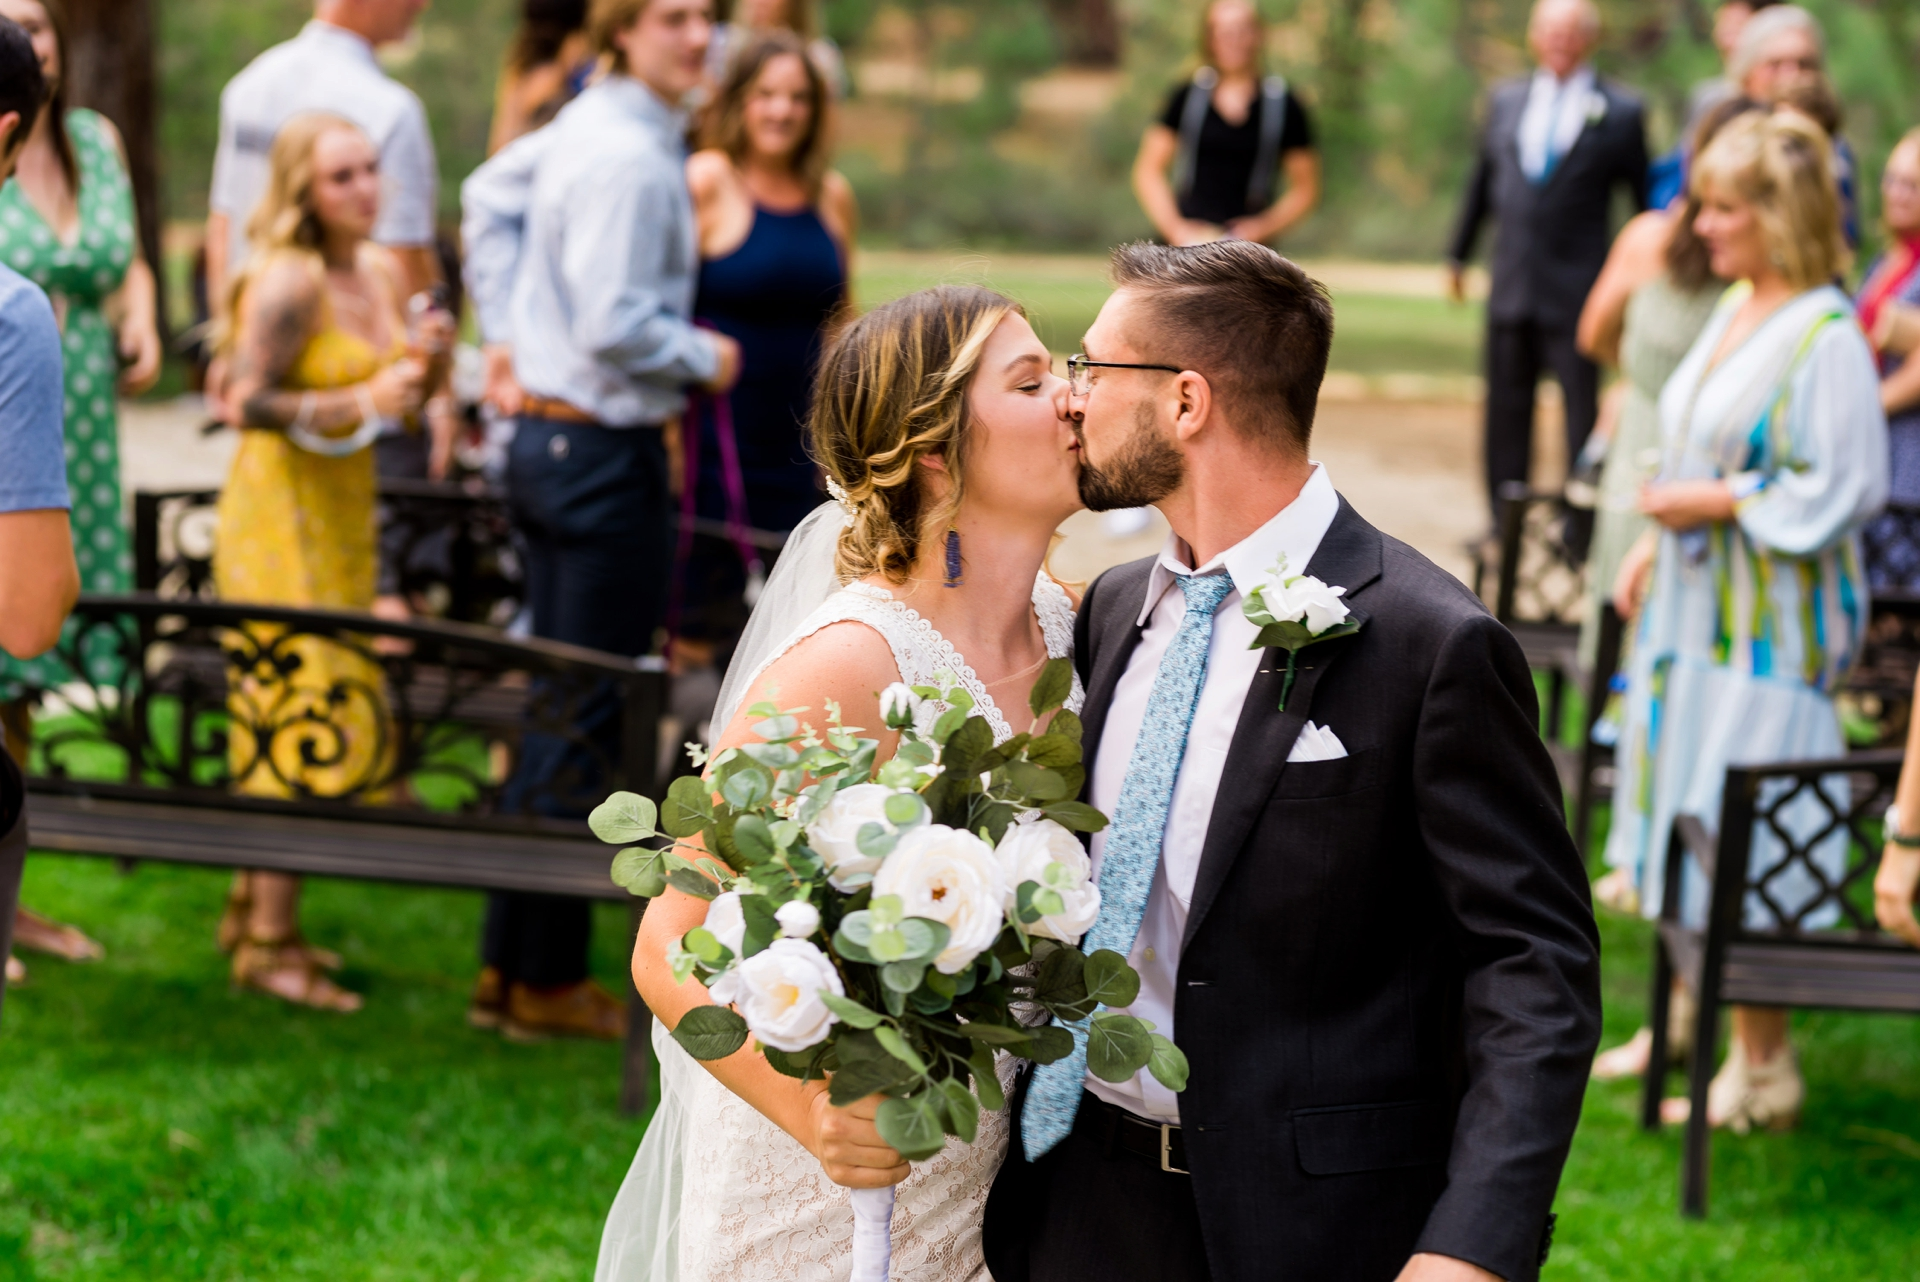 Demonstration Gardens of Lake Tahoe CC Wedding Photo | The couple recede down the aisle and share a kiss